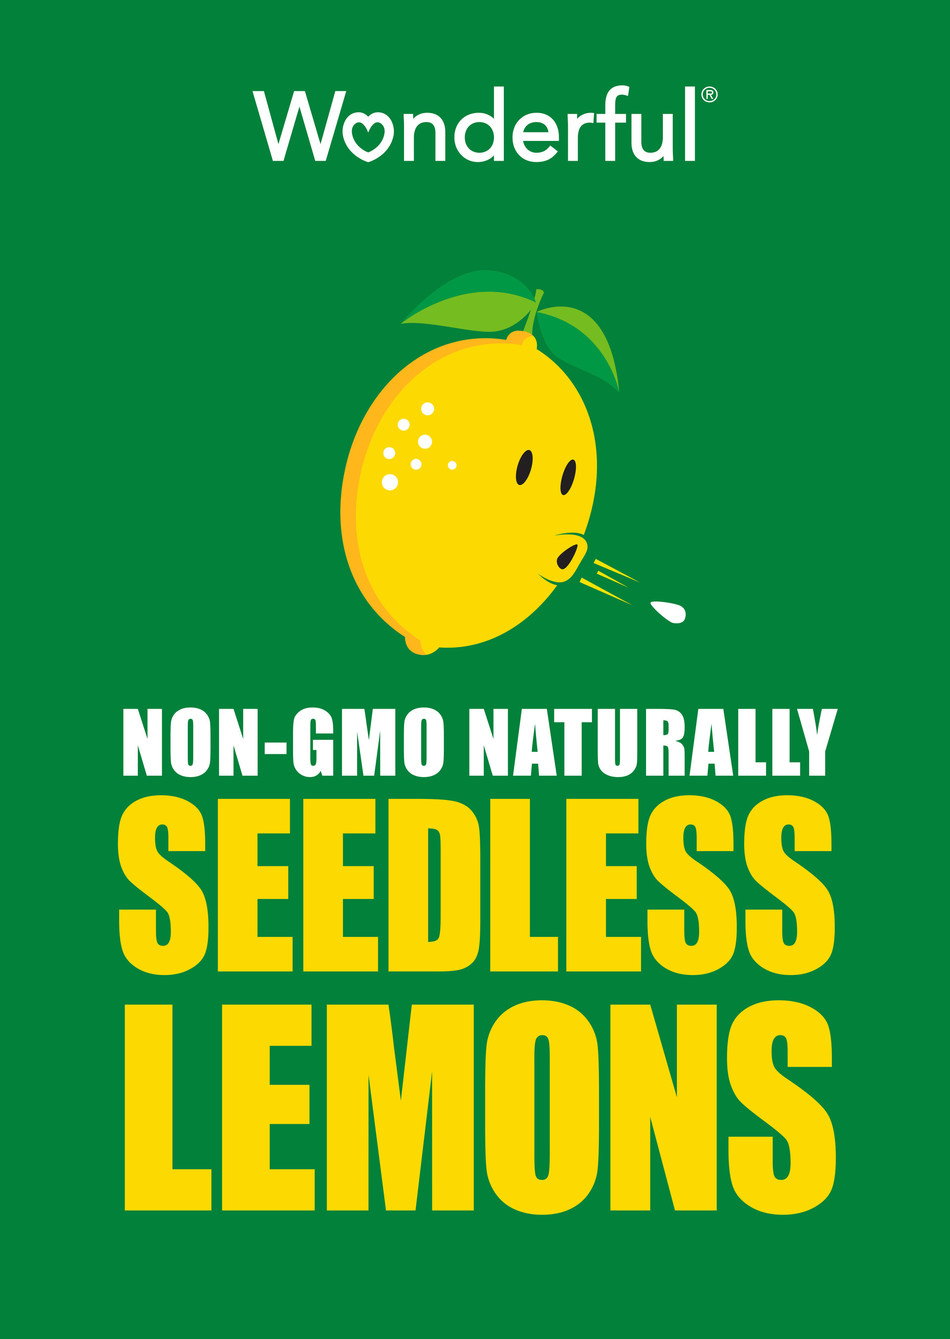 The Wonderful Company Seedless Lemons Logo